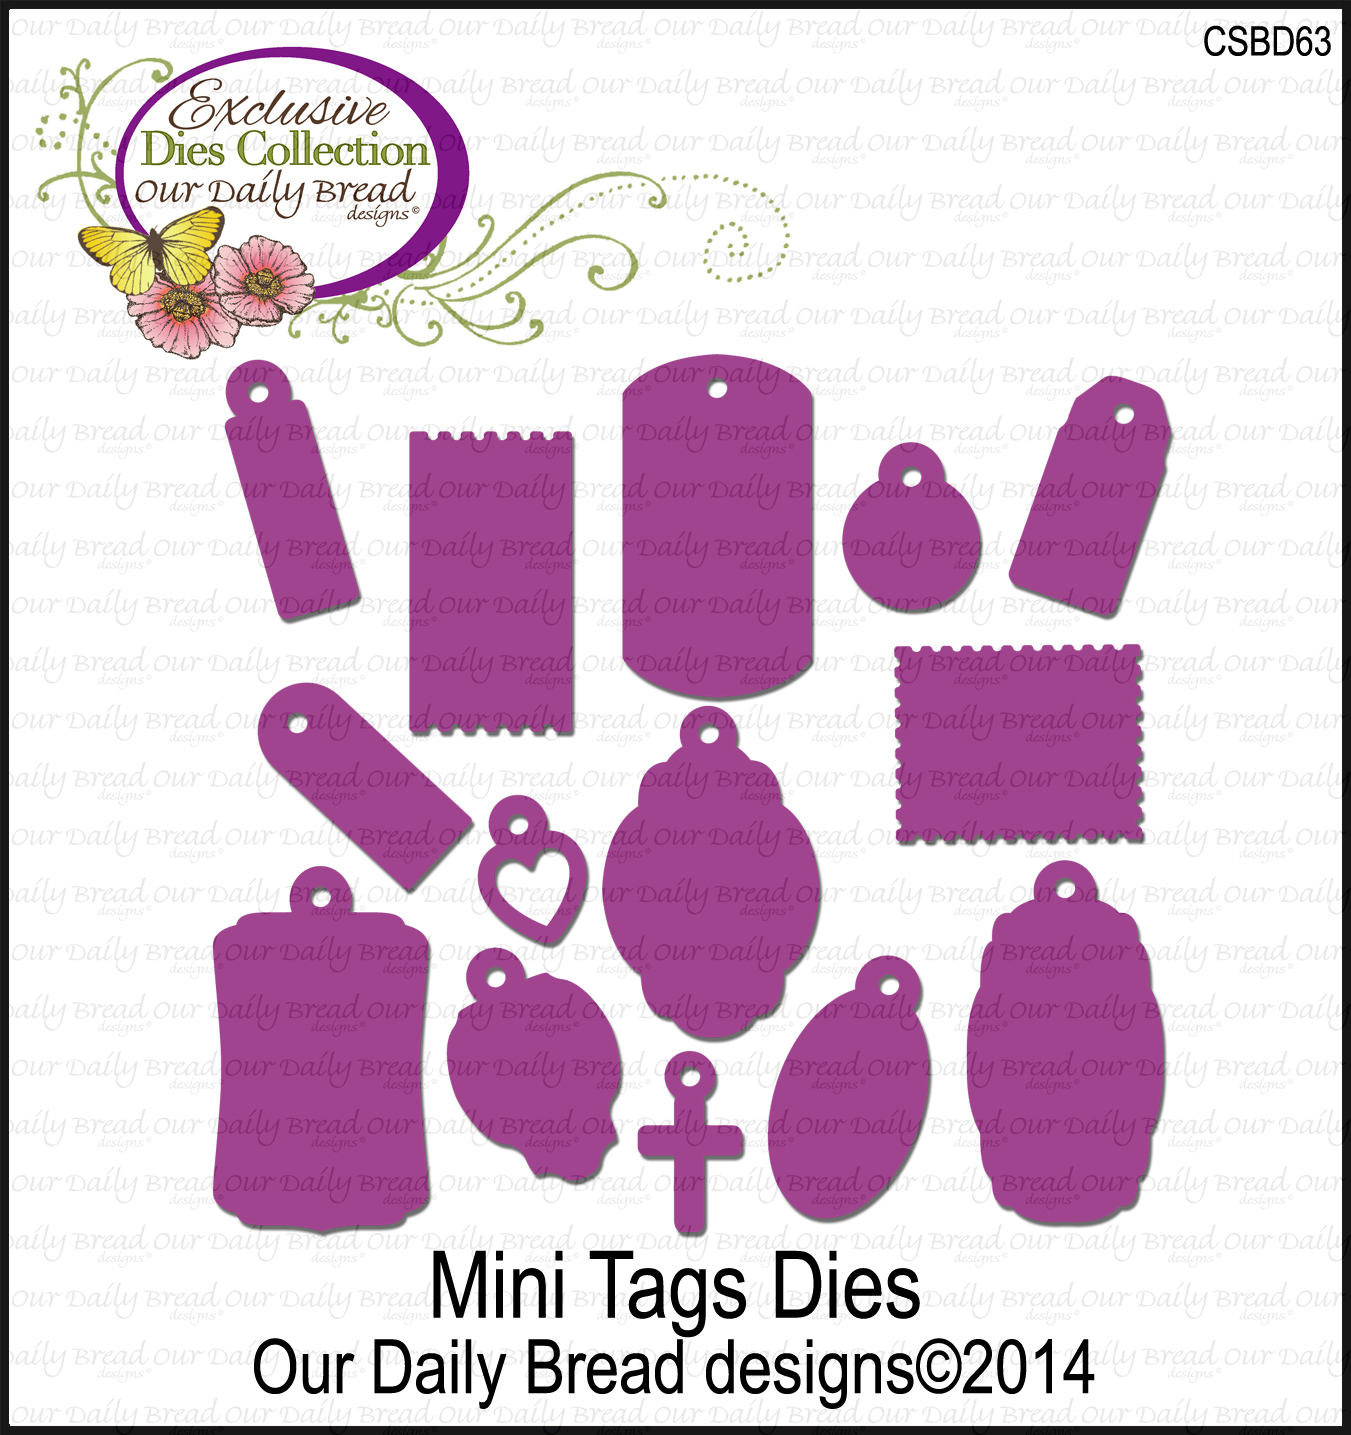 https://www.ourdailybreaddesigns.com/index.php/csbd63-mini-tag-dies.html